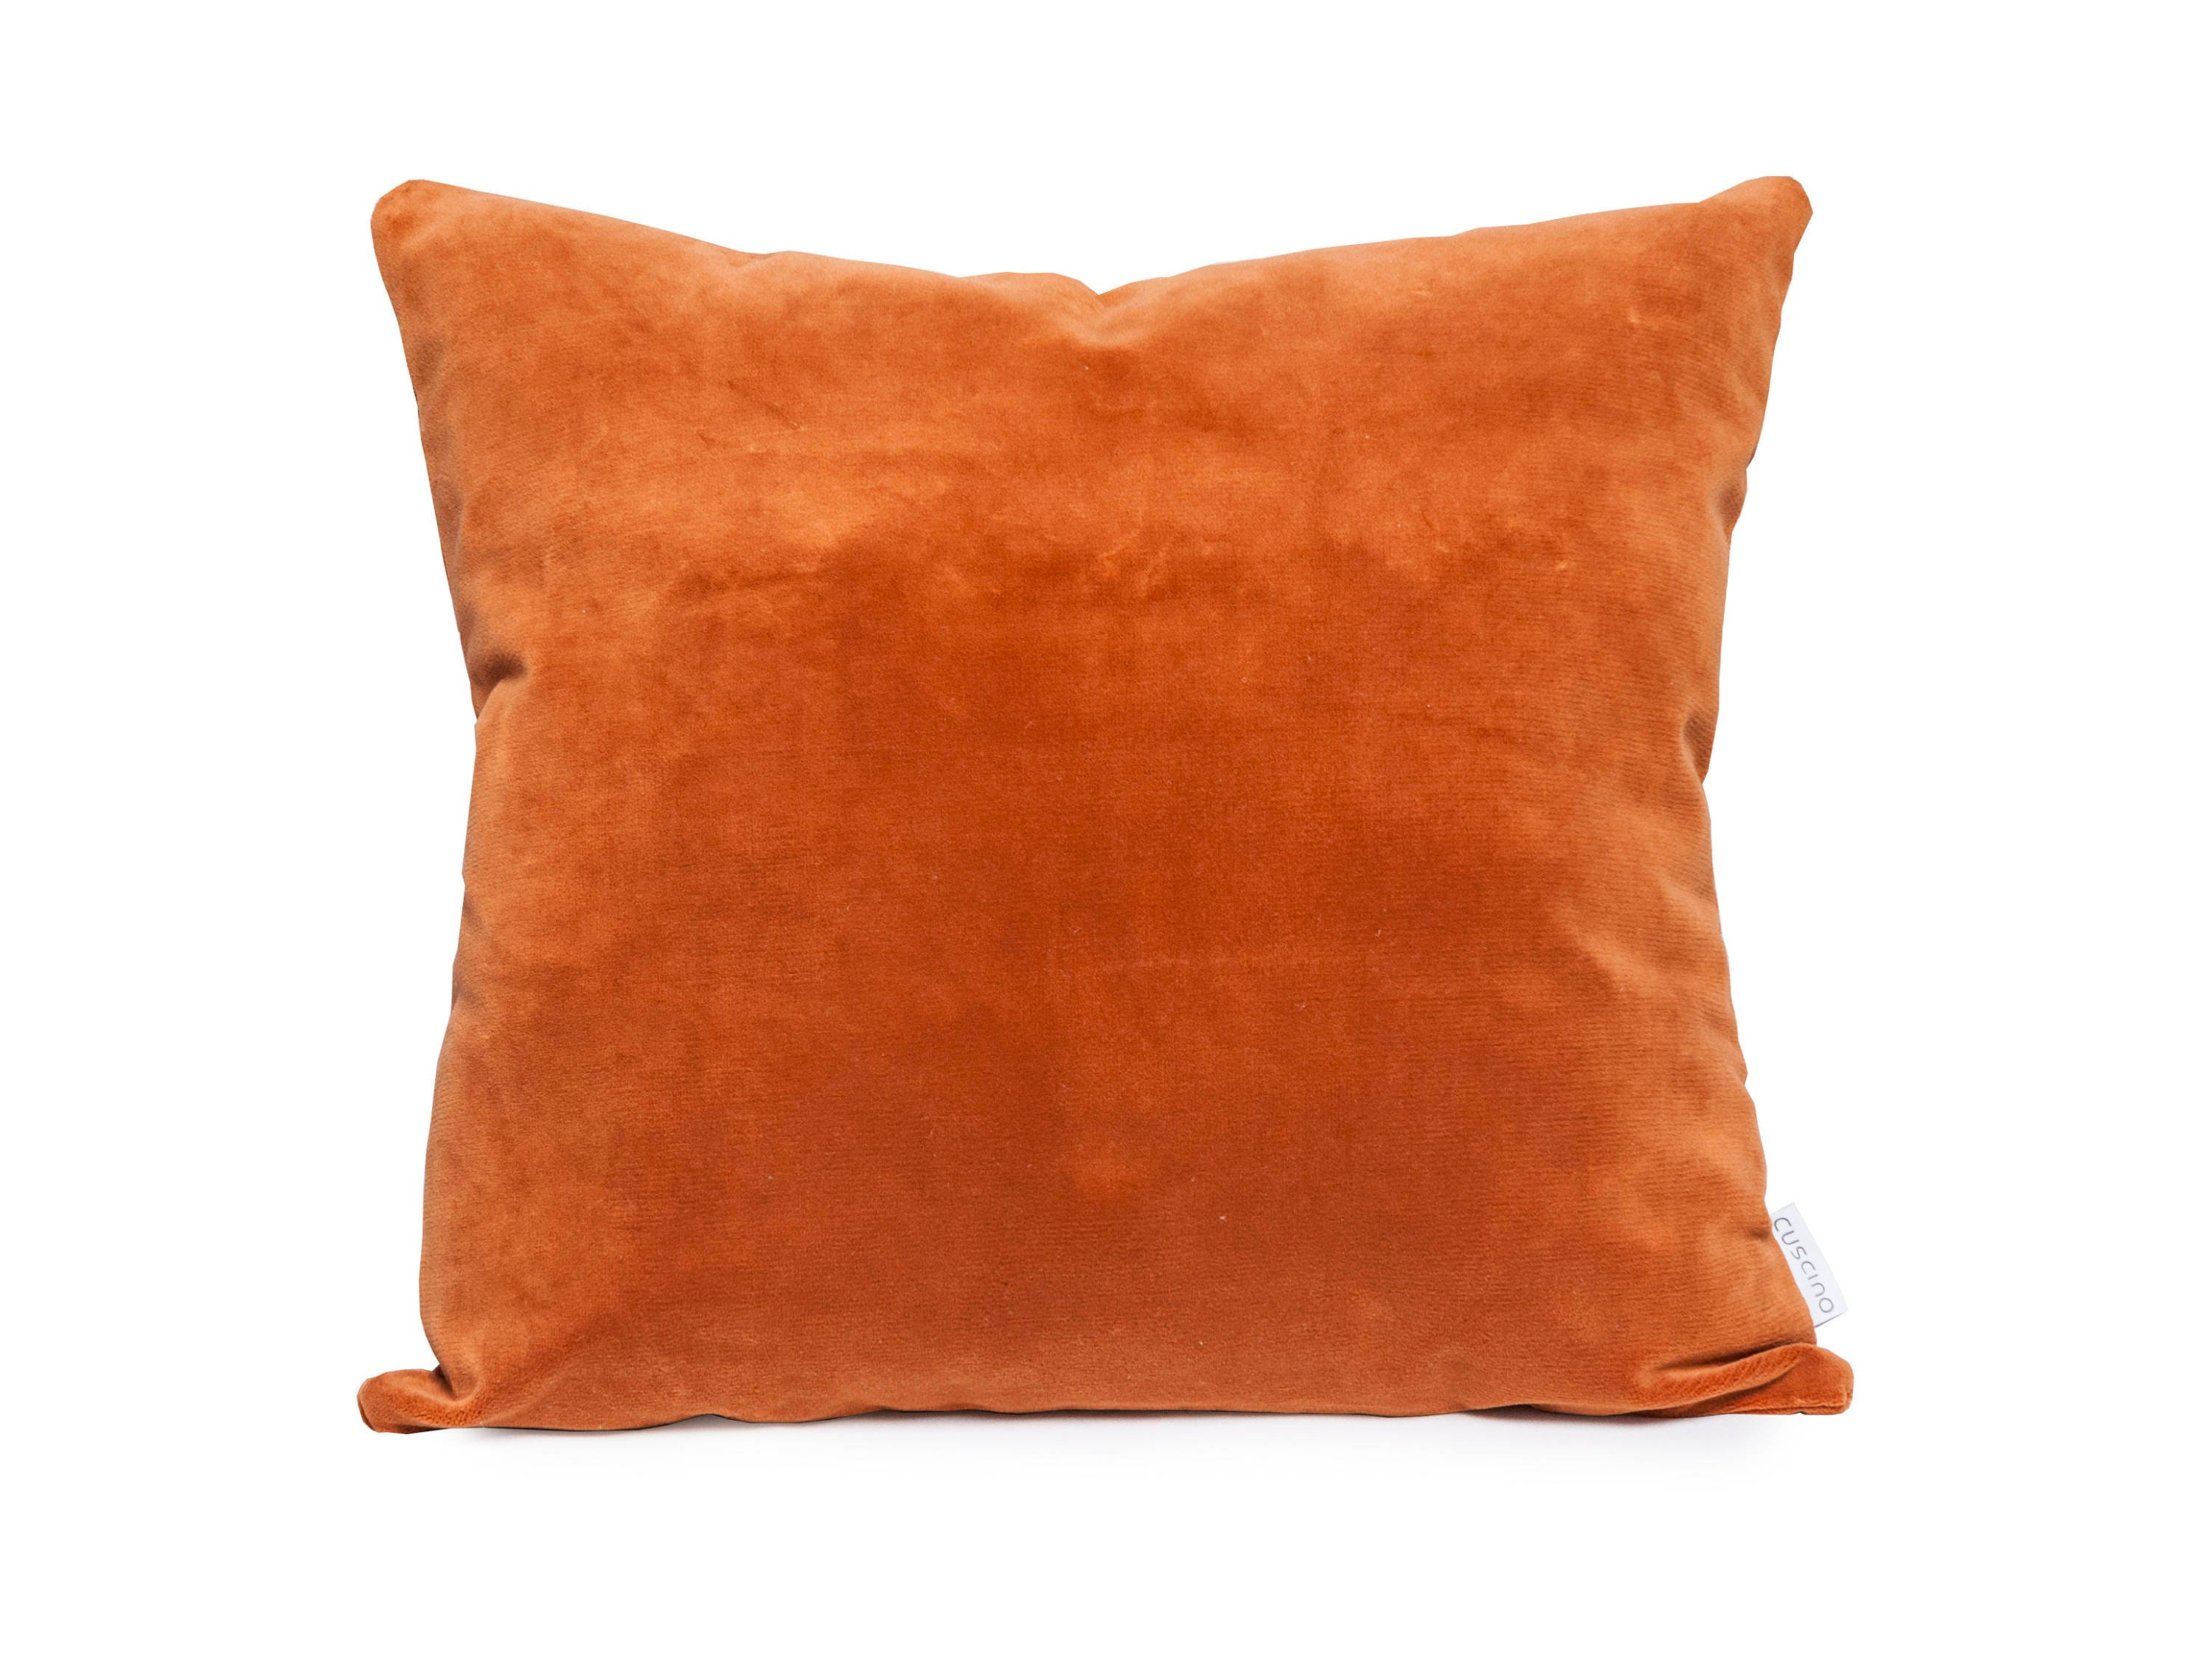 sioux pillow throw sparkle lumbar reversible chocolate child red orange bead magazine best pillows app image ideas pop falls mother alt sd home silk